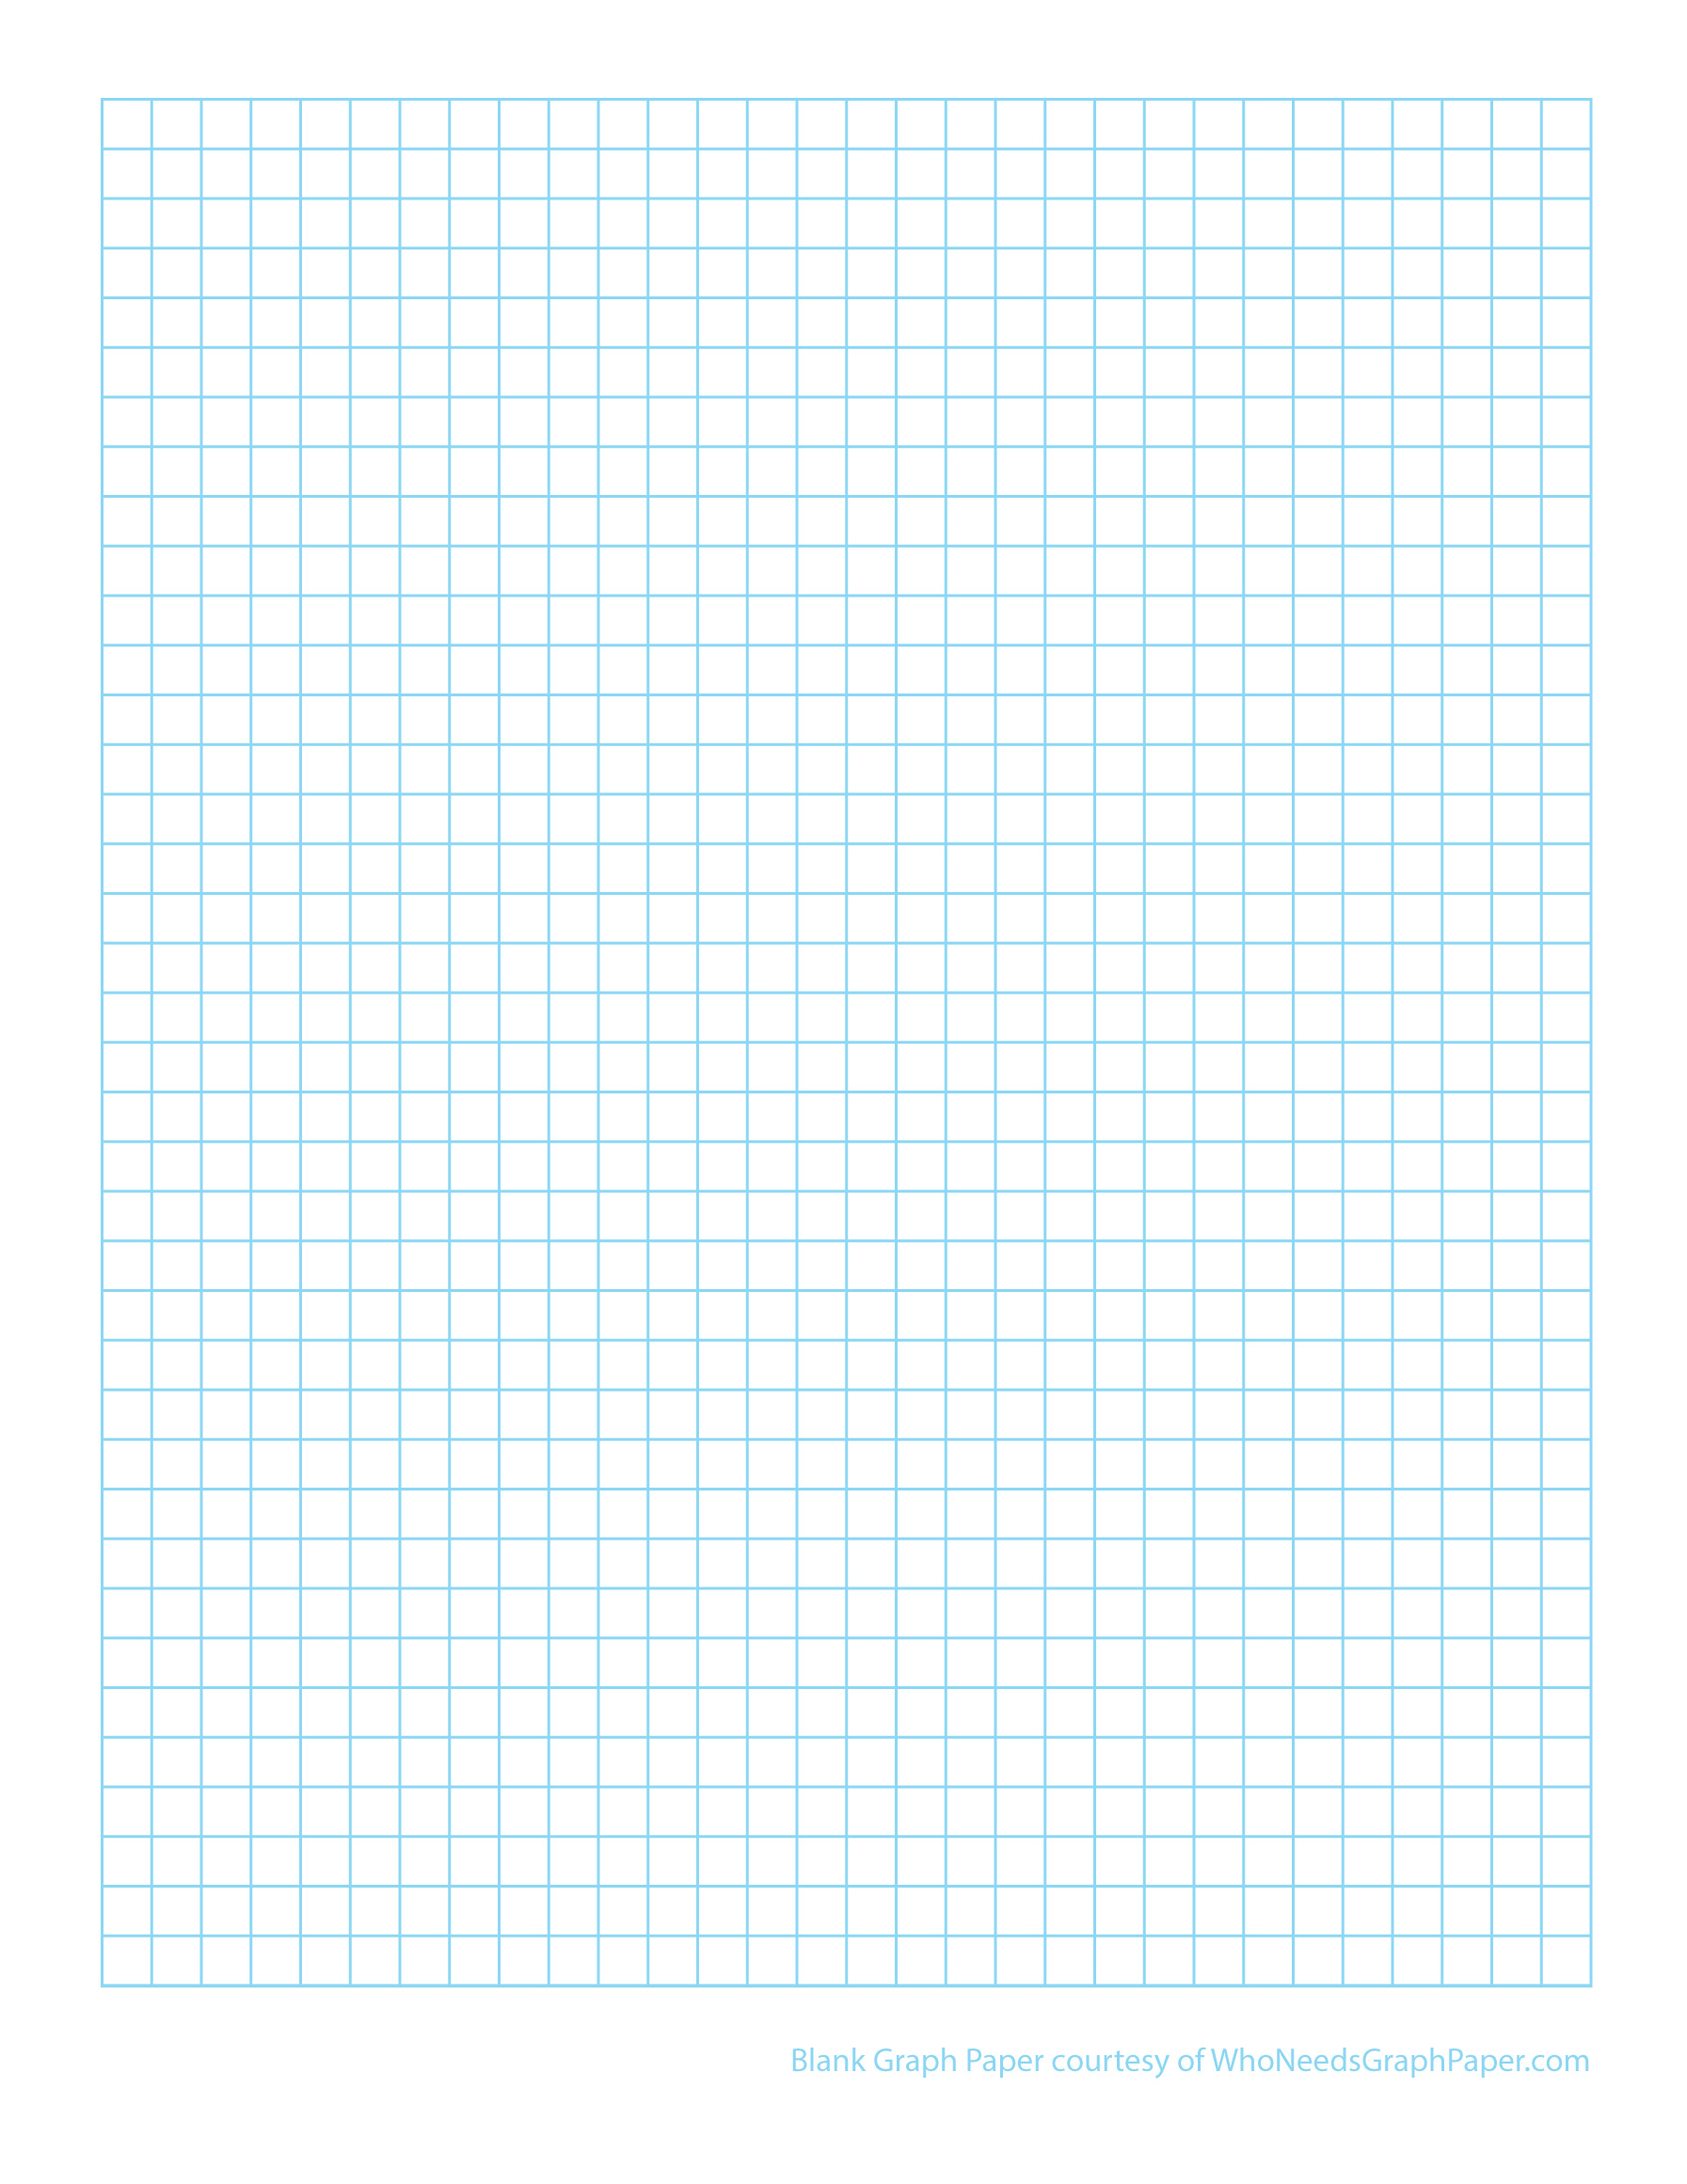 Simple graph paper for Online graph paper design tool